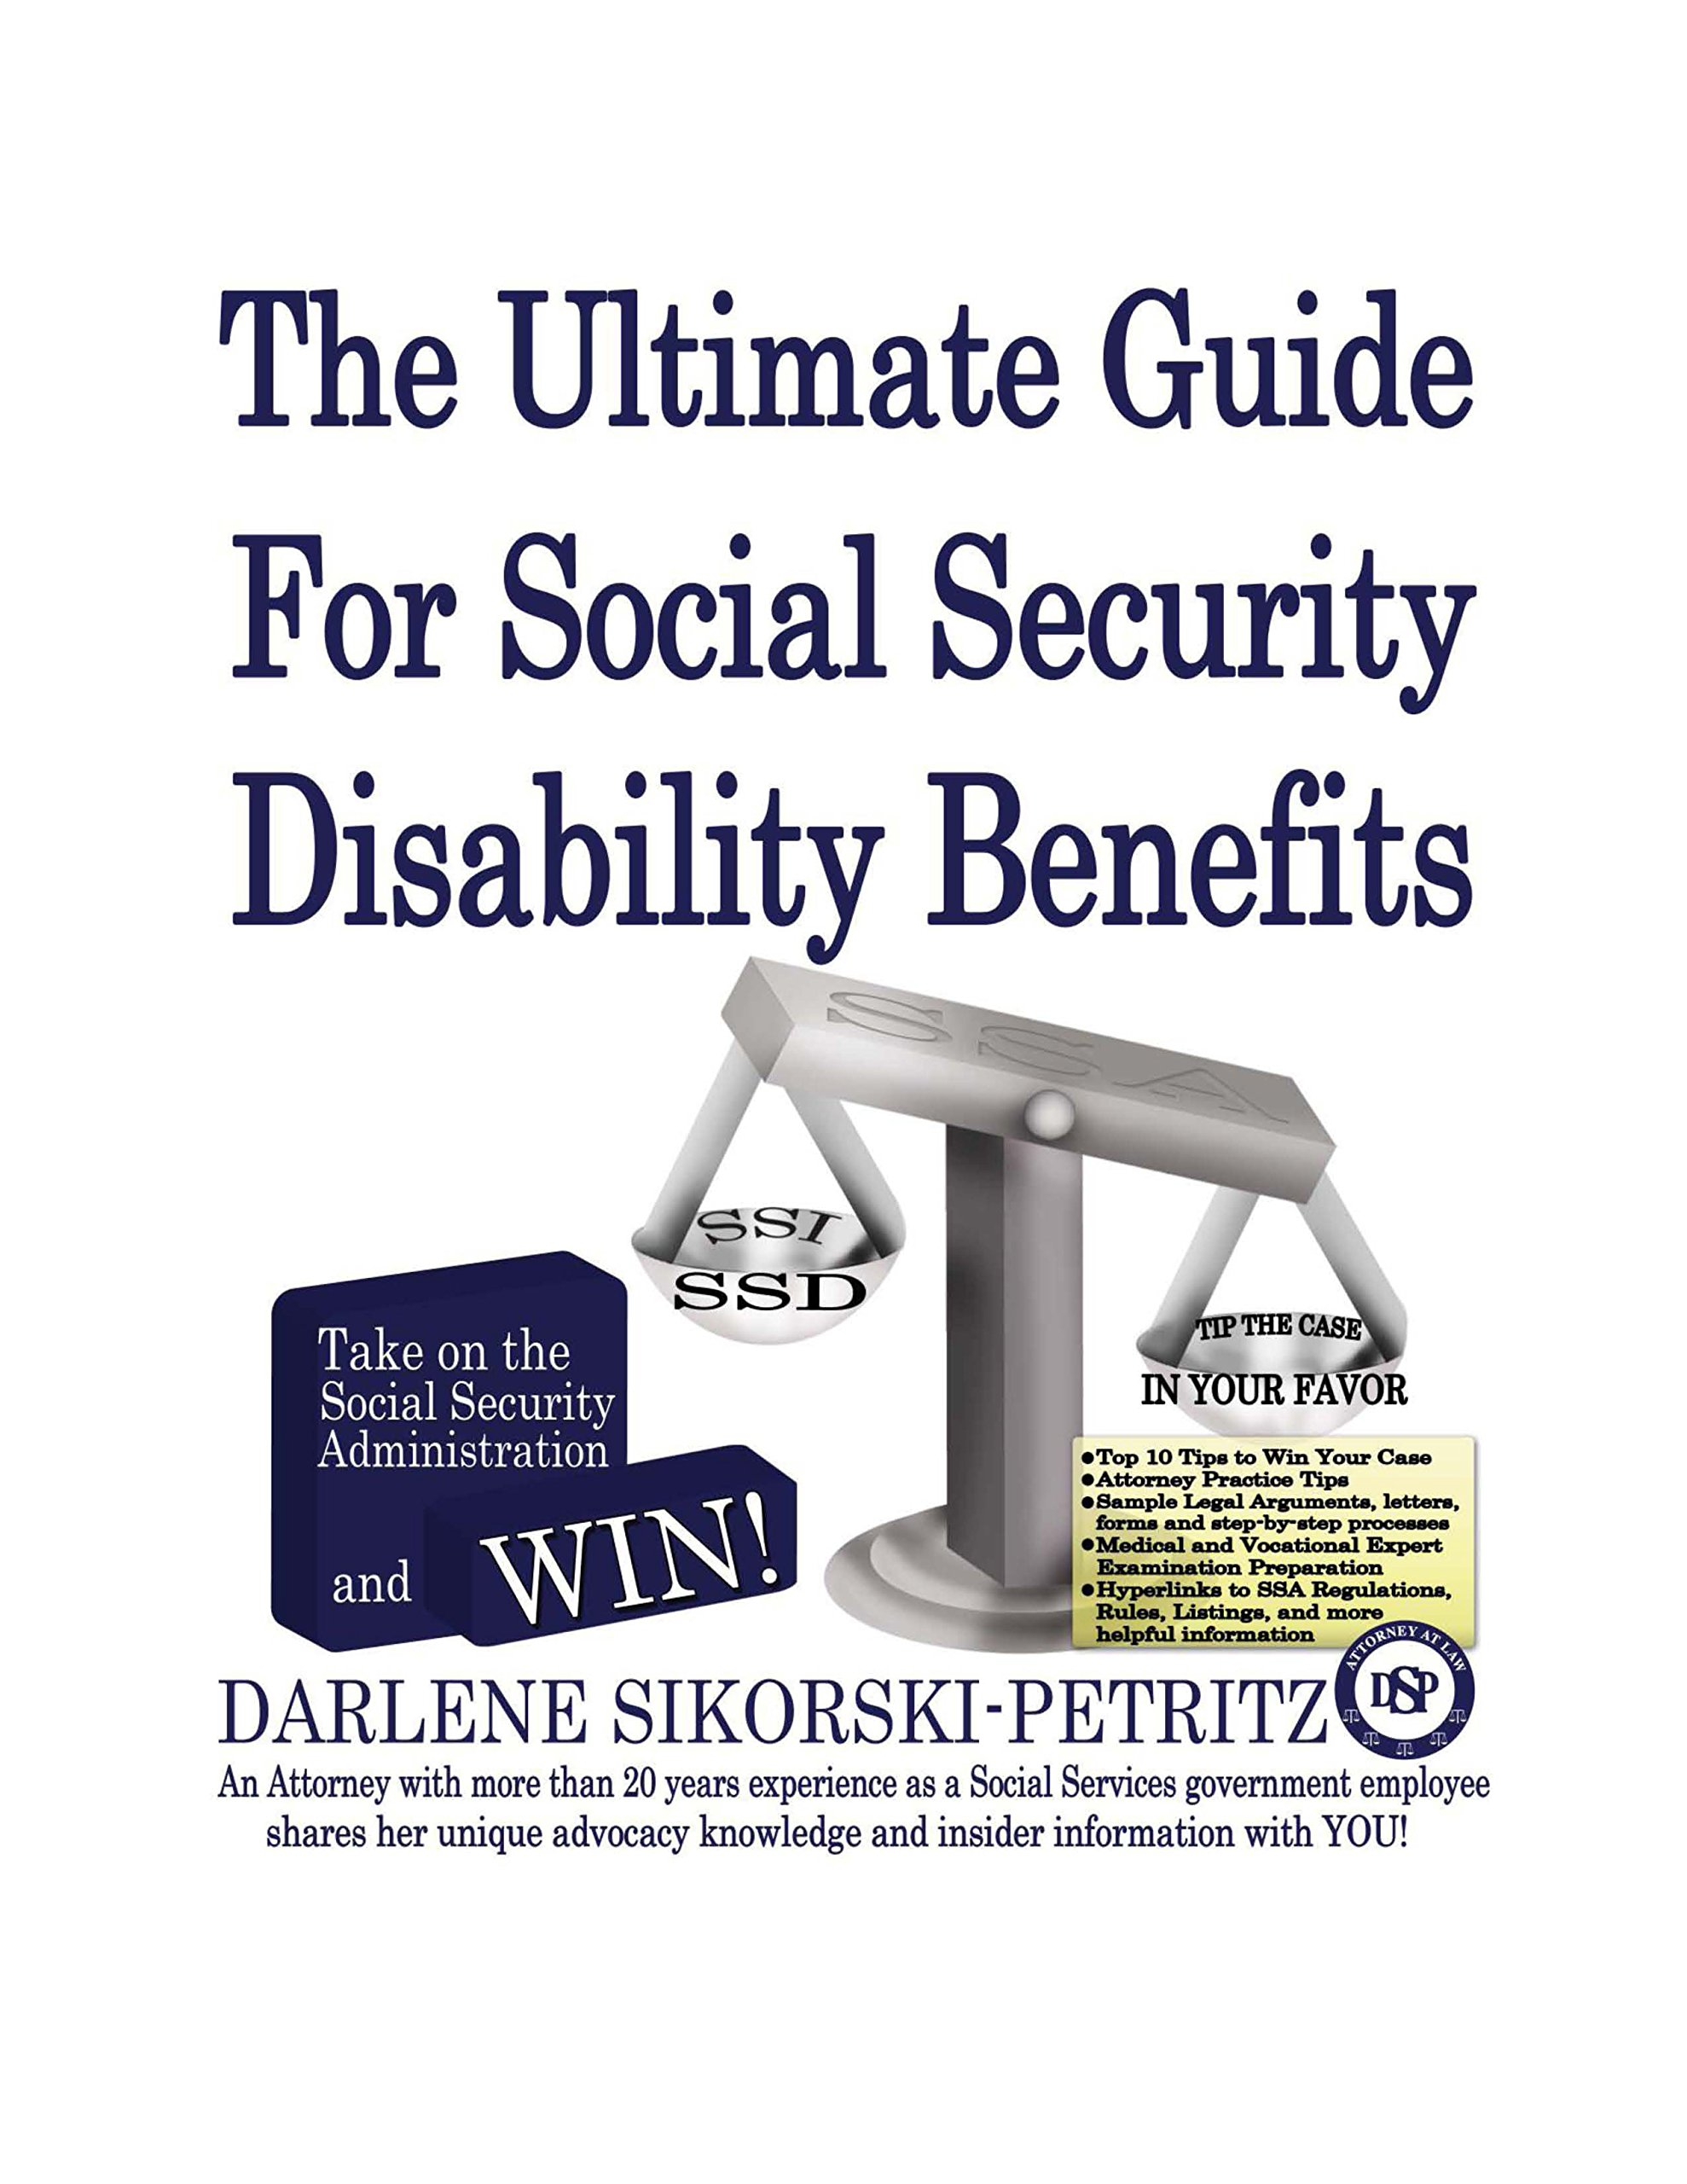 The Ultimate Guide for Social Security Disability Benefits: Darlene